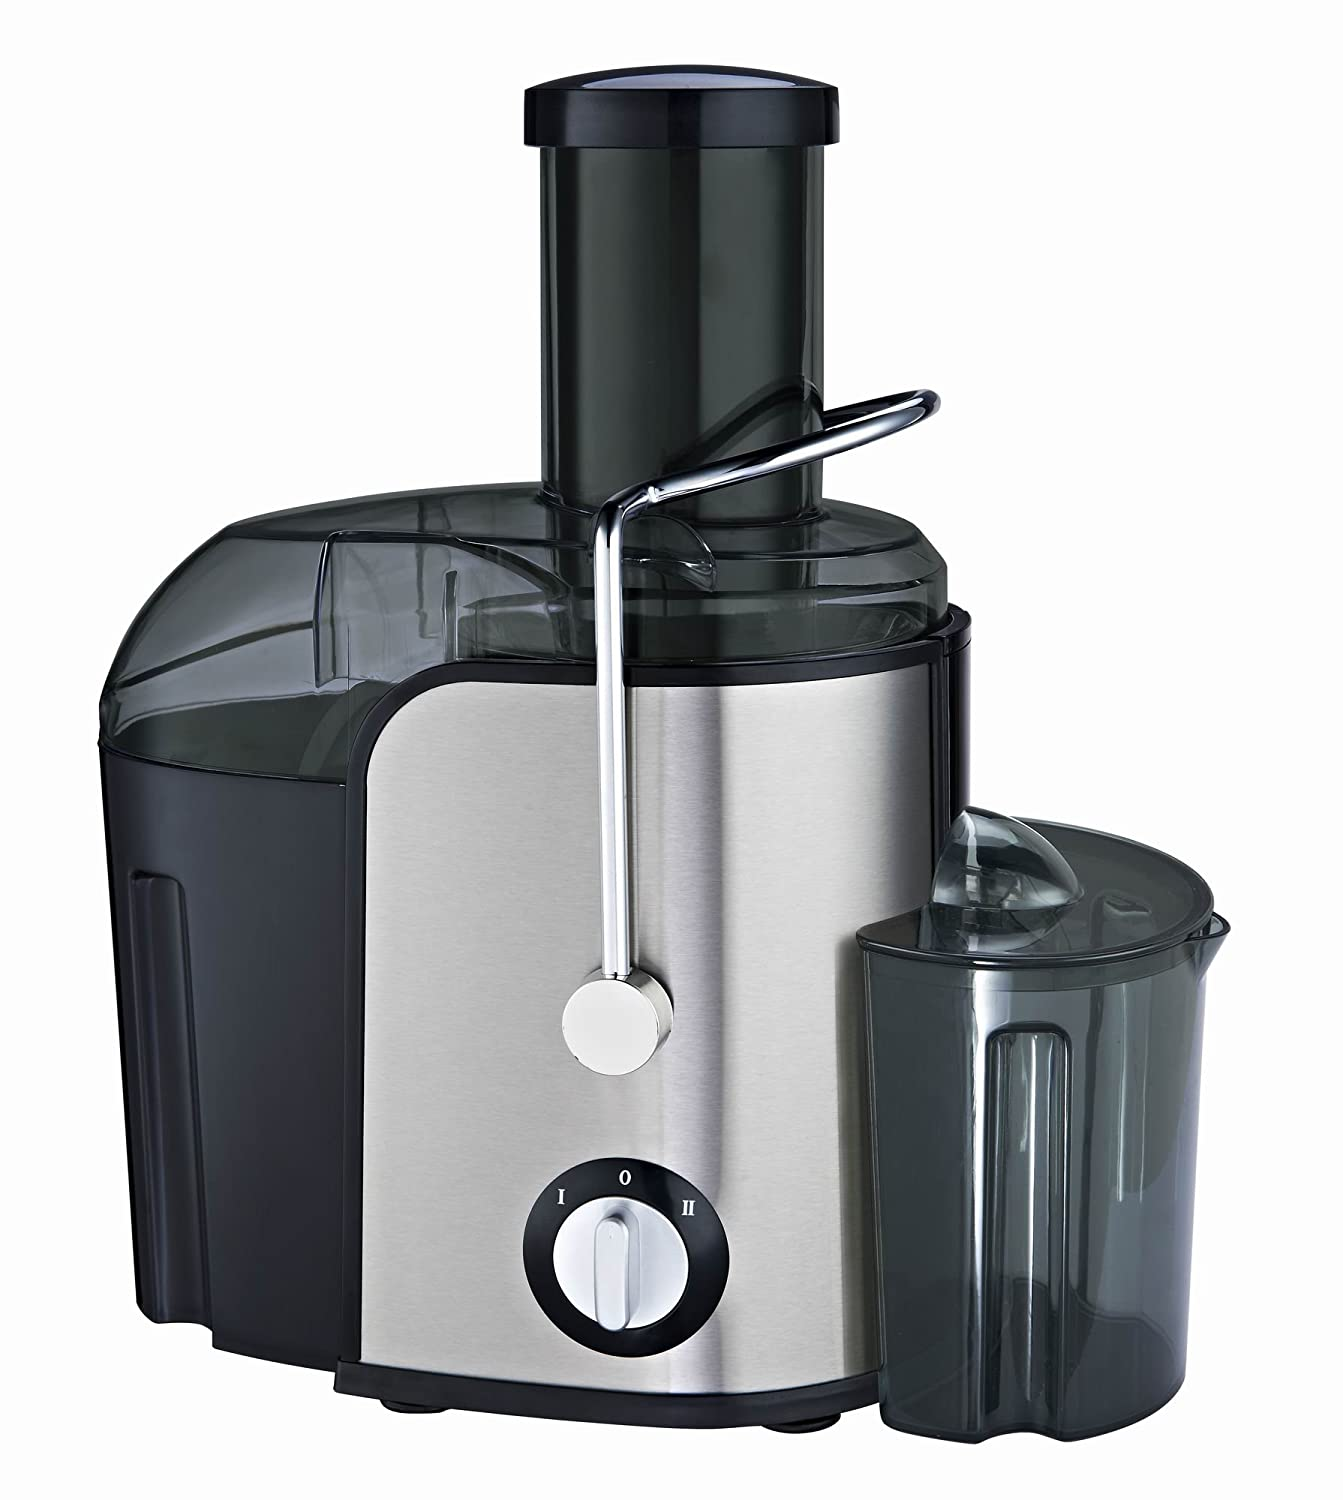 Slow Juicer Mondial Sj 01 : Slow Juicer Harga. Homemade Juice Easily. Slow Juicer Silver Hwsbe18 W Drum Set. Picture Of ...